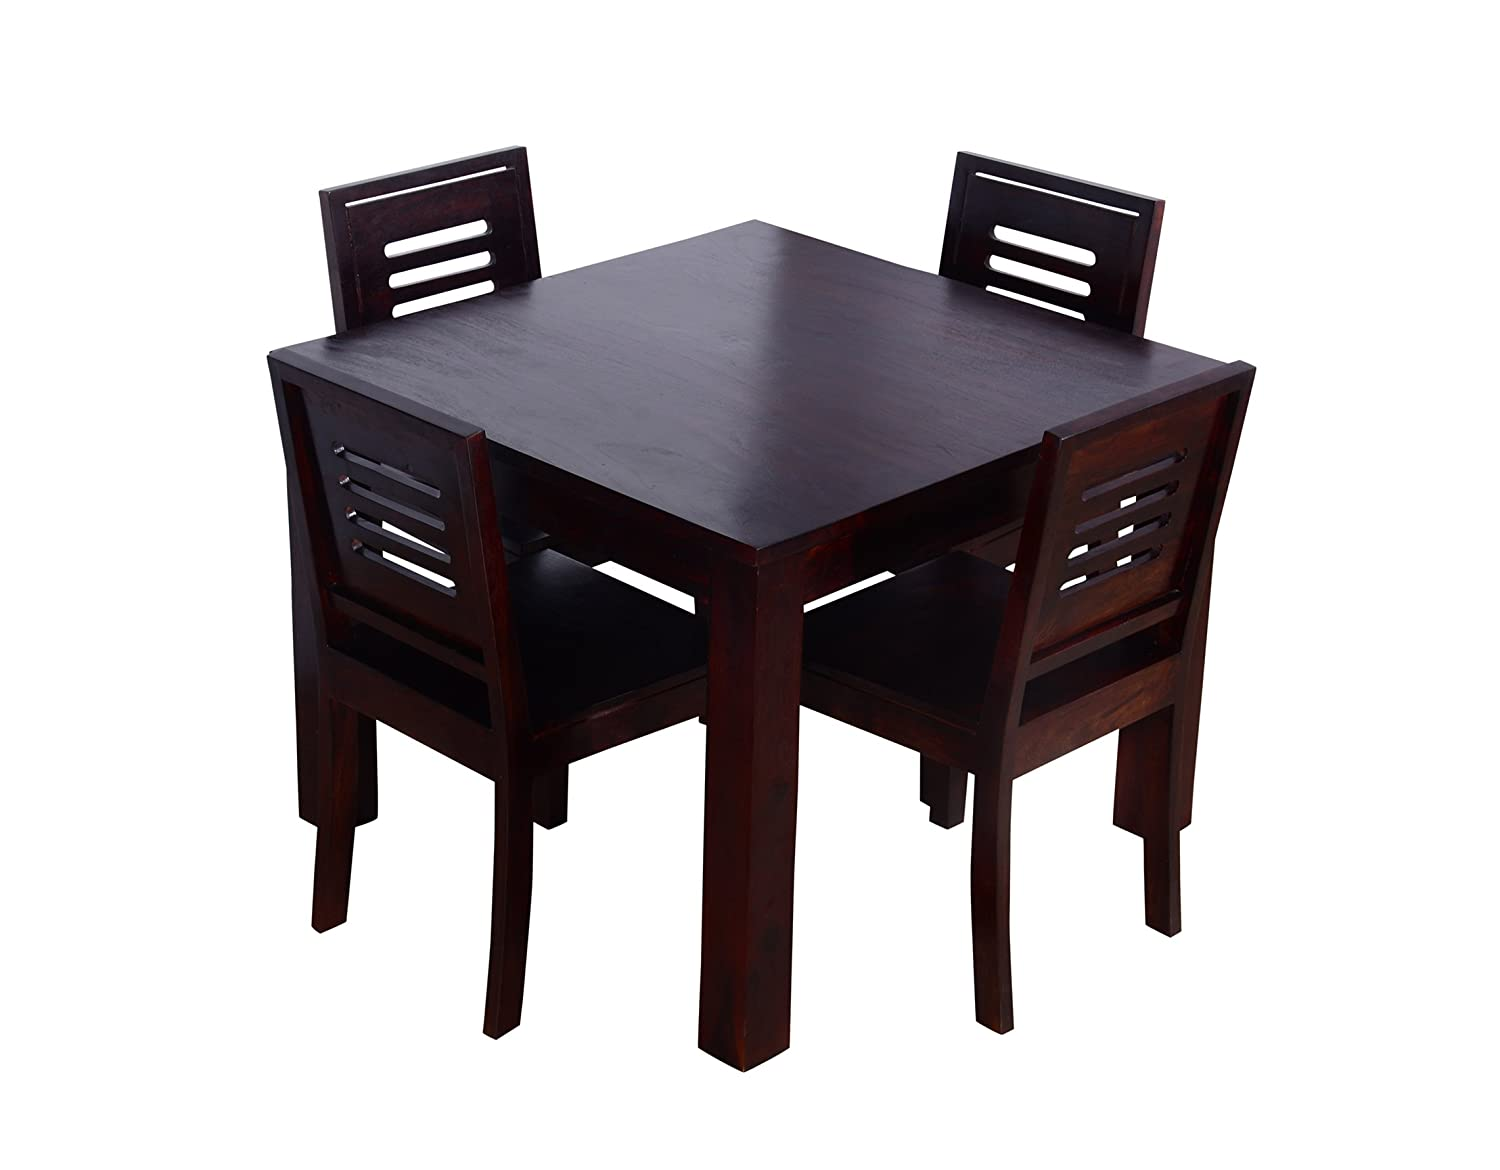 furniture products set table stockholm stowaway dining